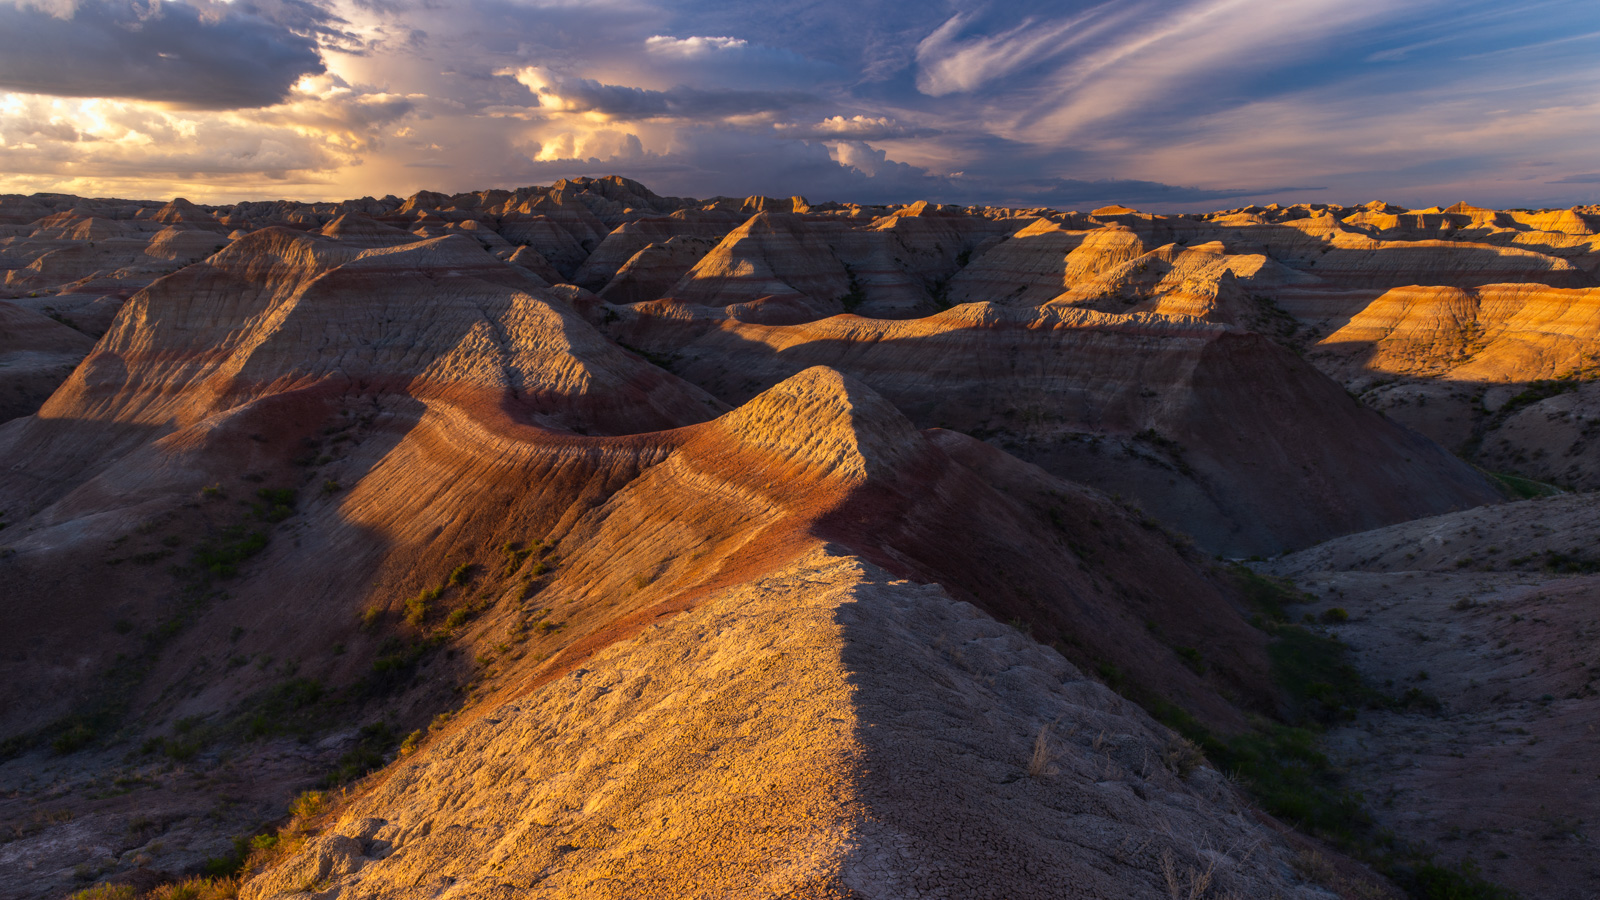 Badlands streathing for mailes as a huge thunderstorm develops at sunset.